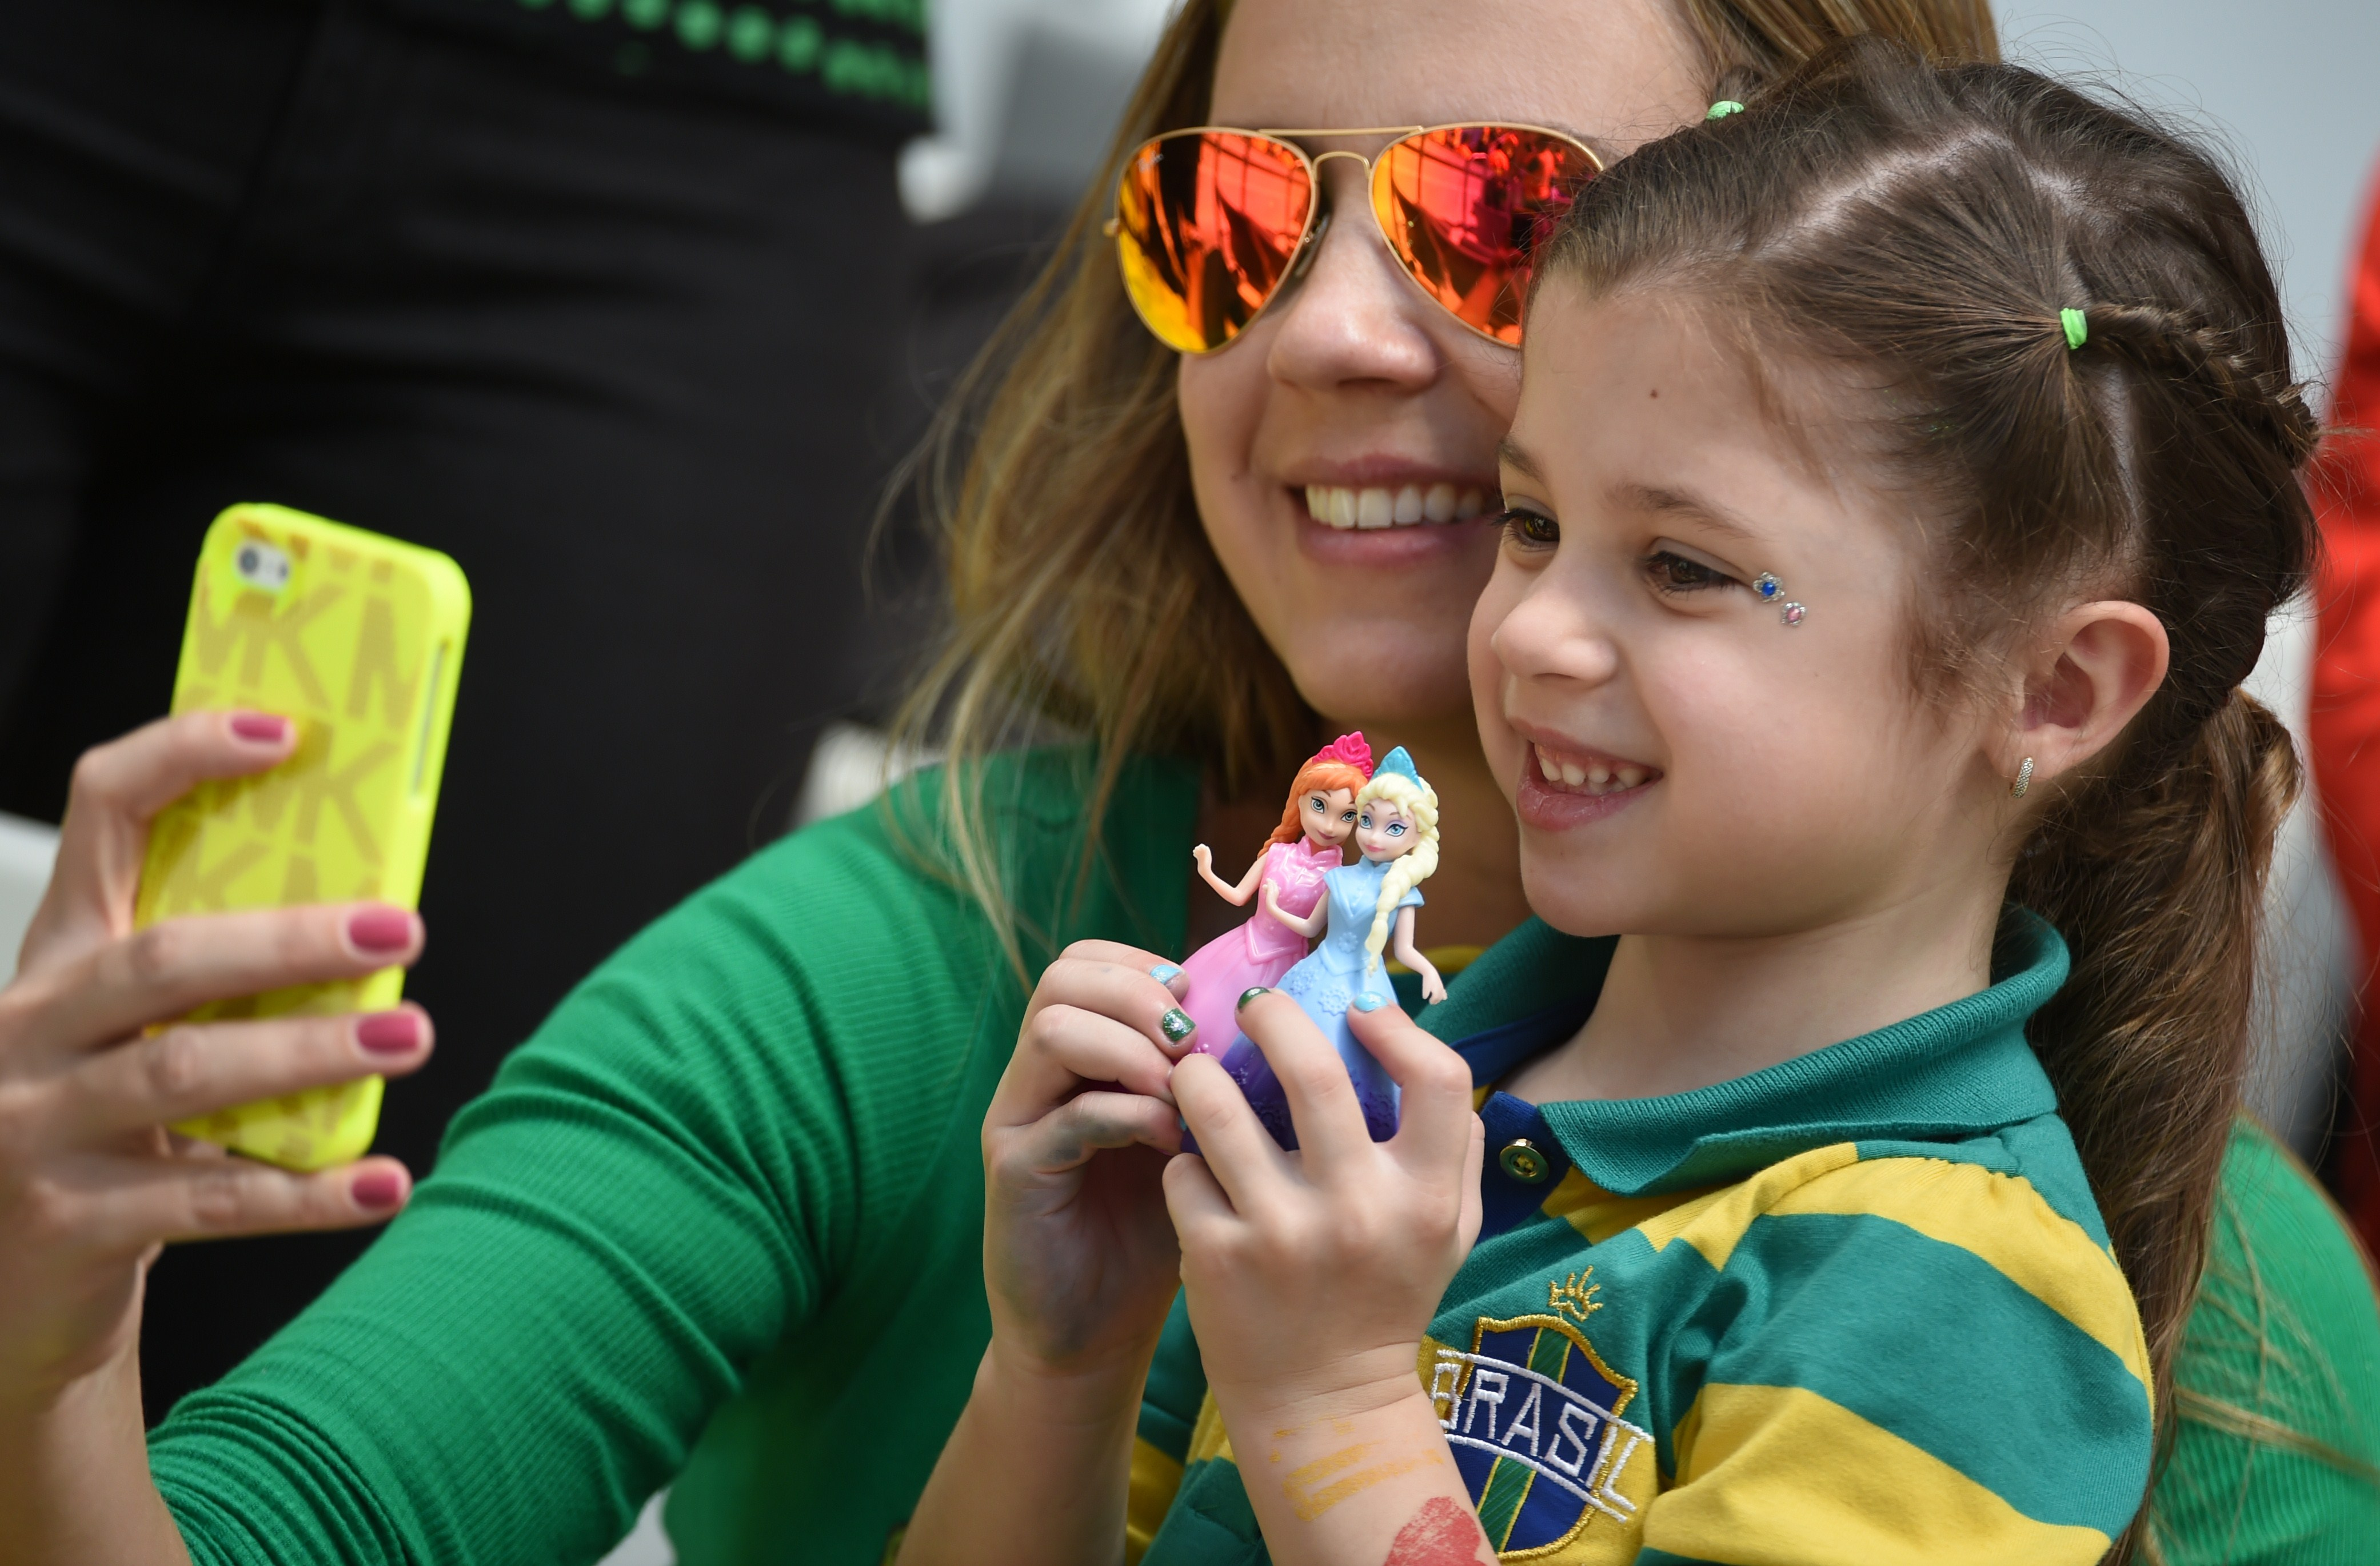 Australian fans take a picture with a smartphone before a Group B football match between Australia and Spain at the Baixada Arena in Curitiba during the 2014 FIFA World Cup on June 23, 2014.